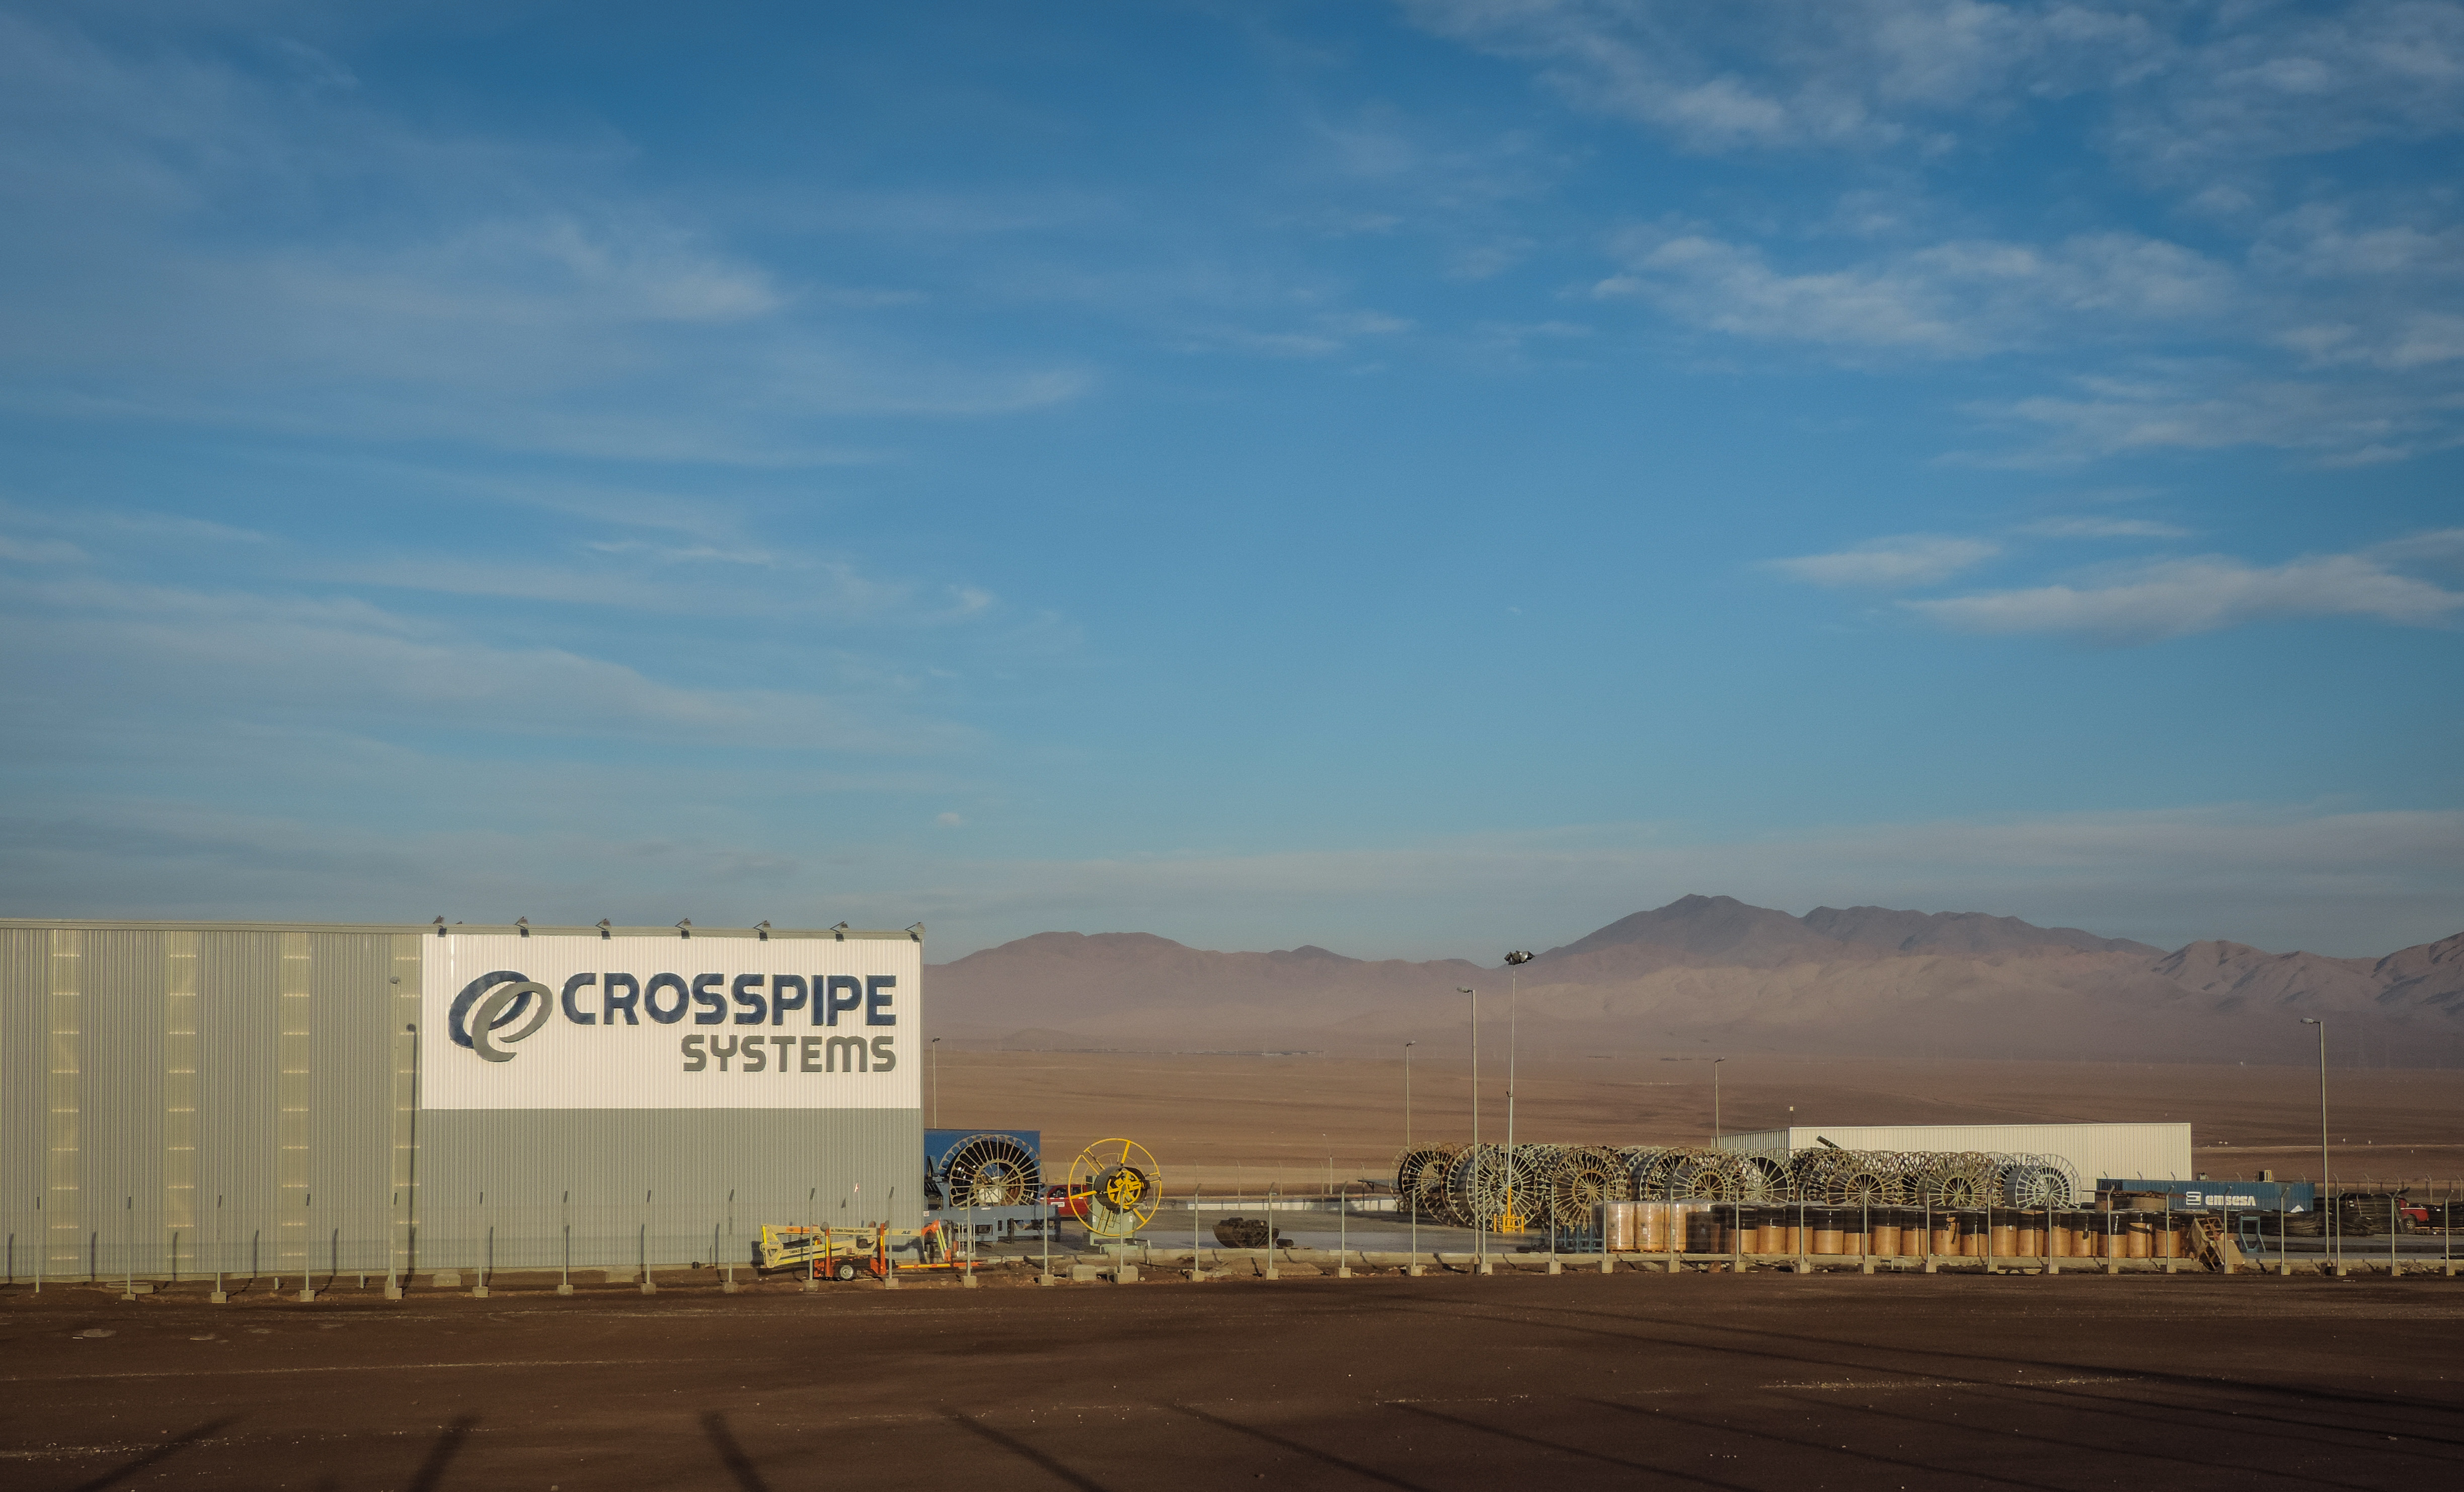 Crosspipe Systems